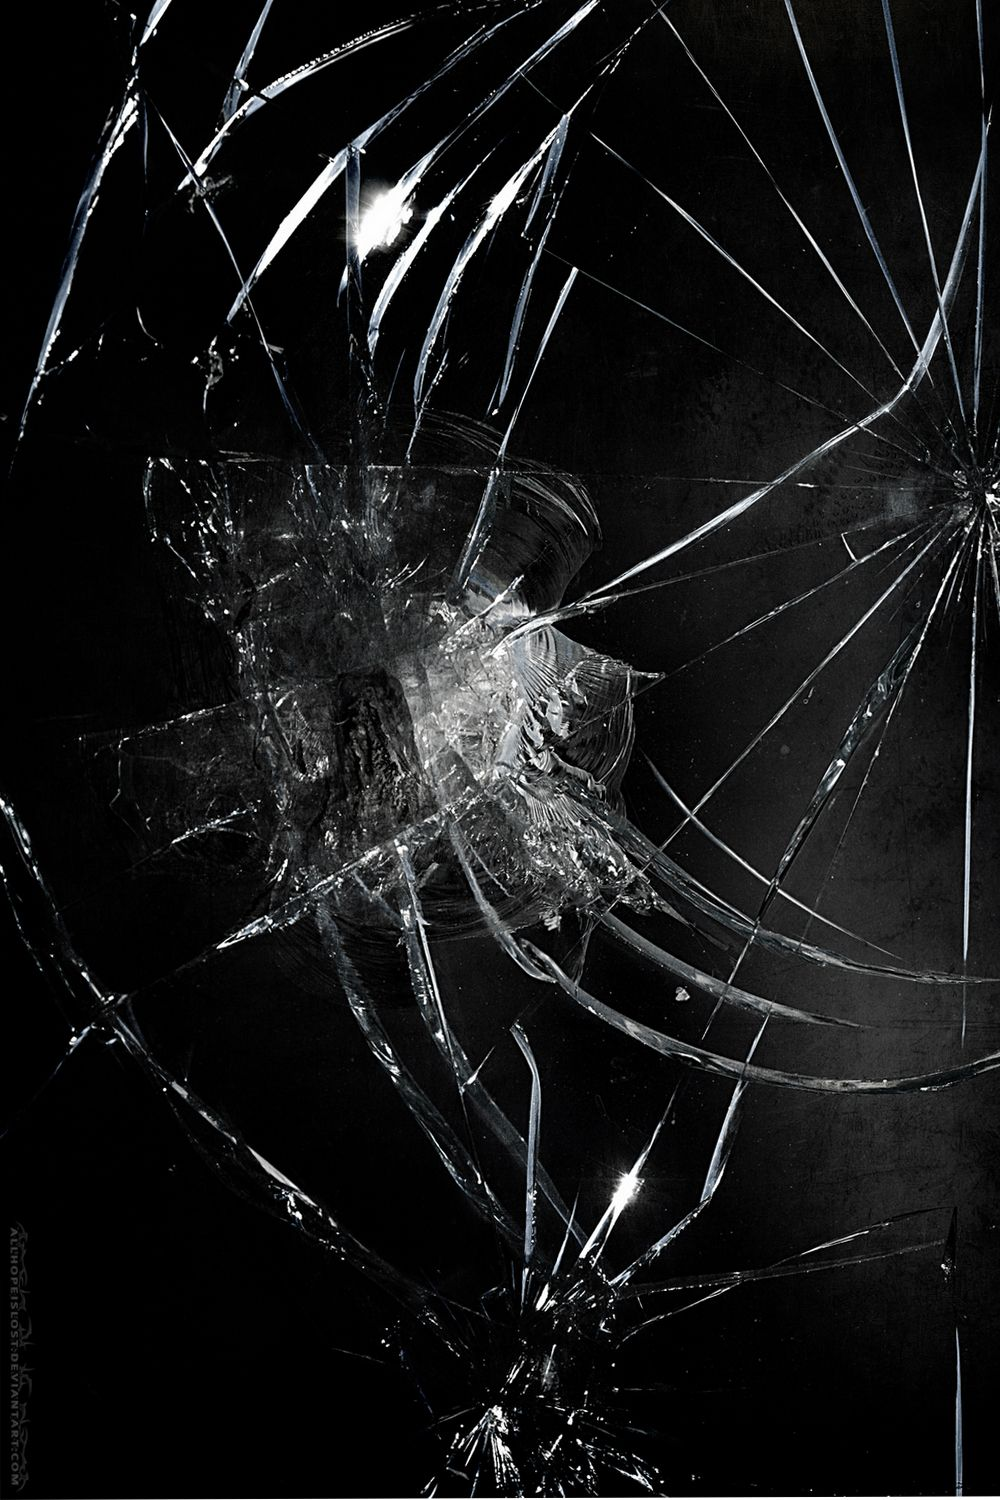 Broken Screen Wallpaper 4k Download In 2020 Broken Screen Wallpaper Screen Wallpaper Hd Screen Wallpaper